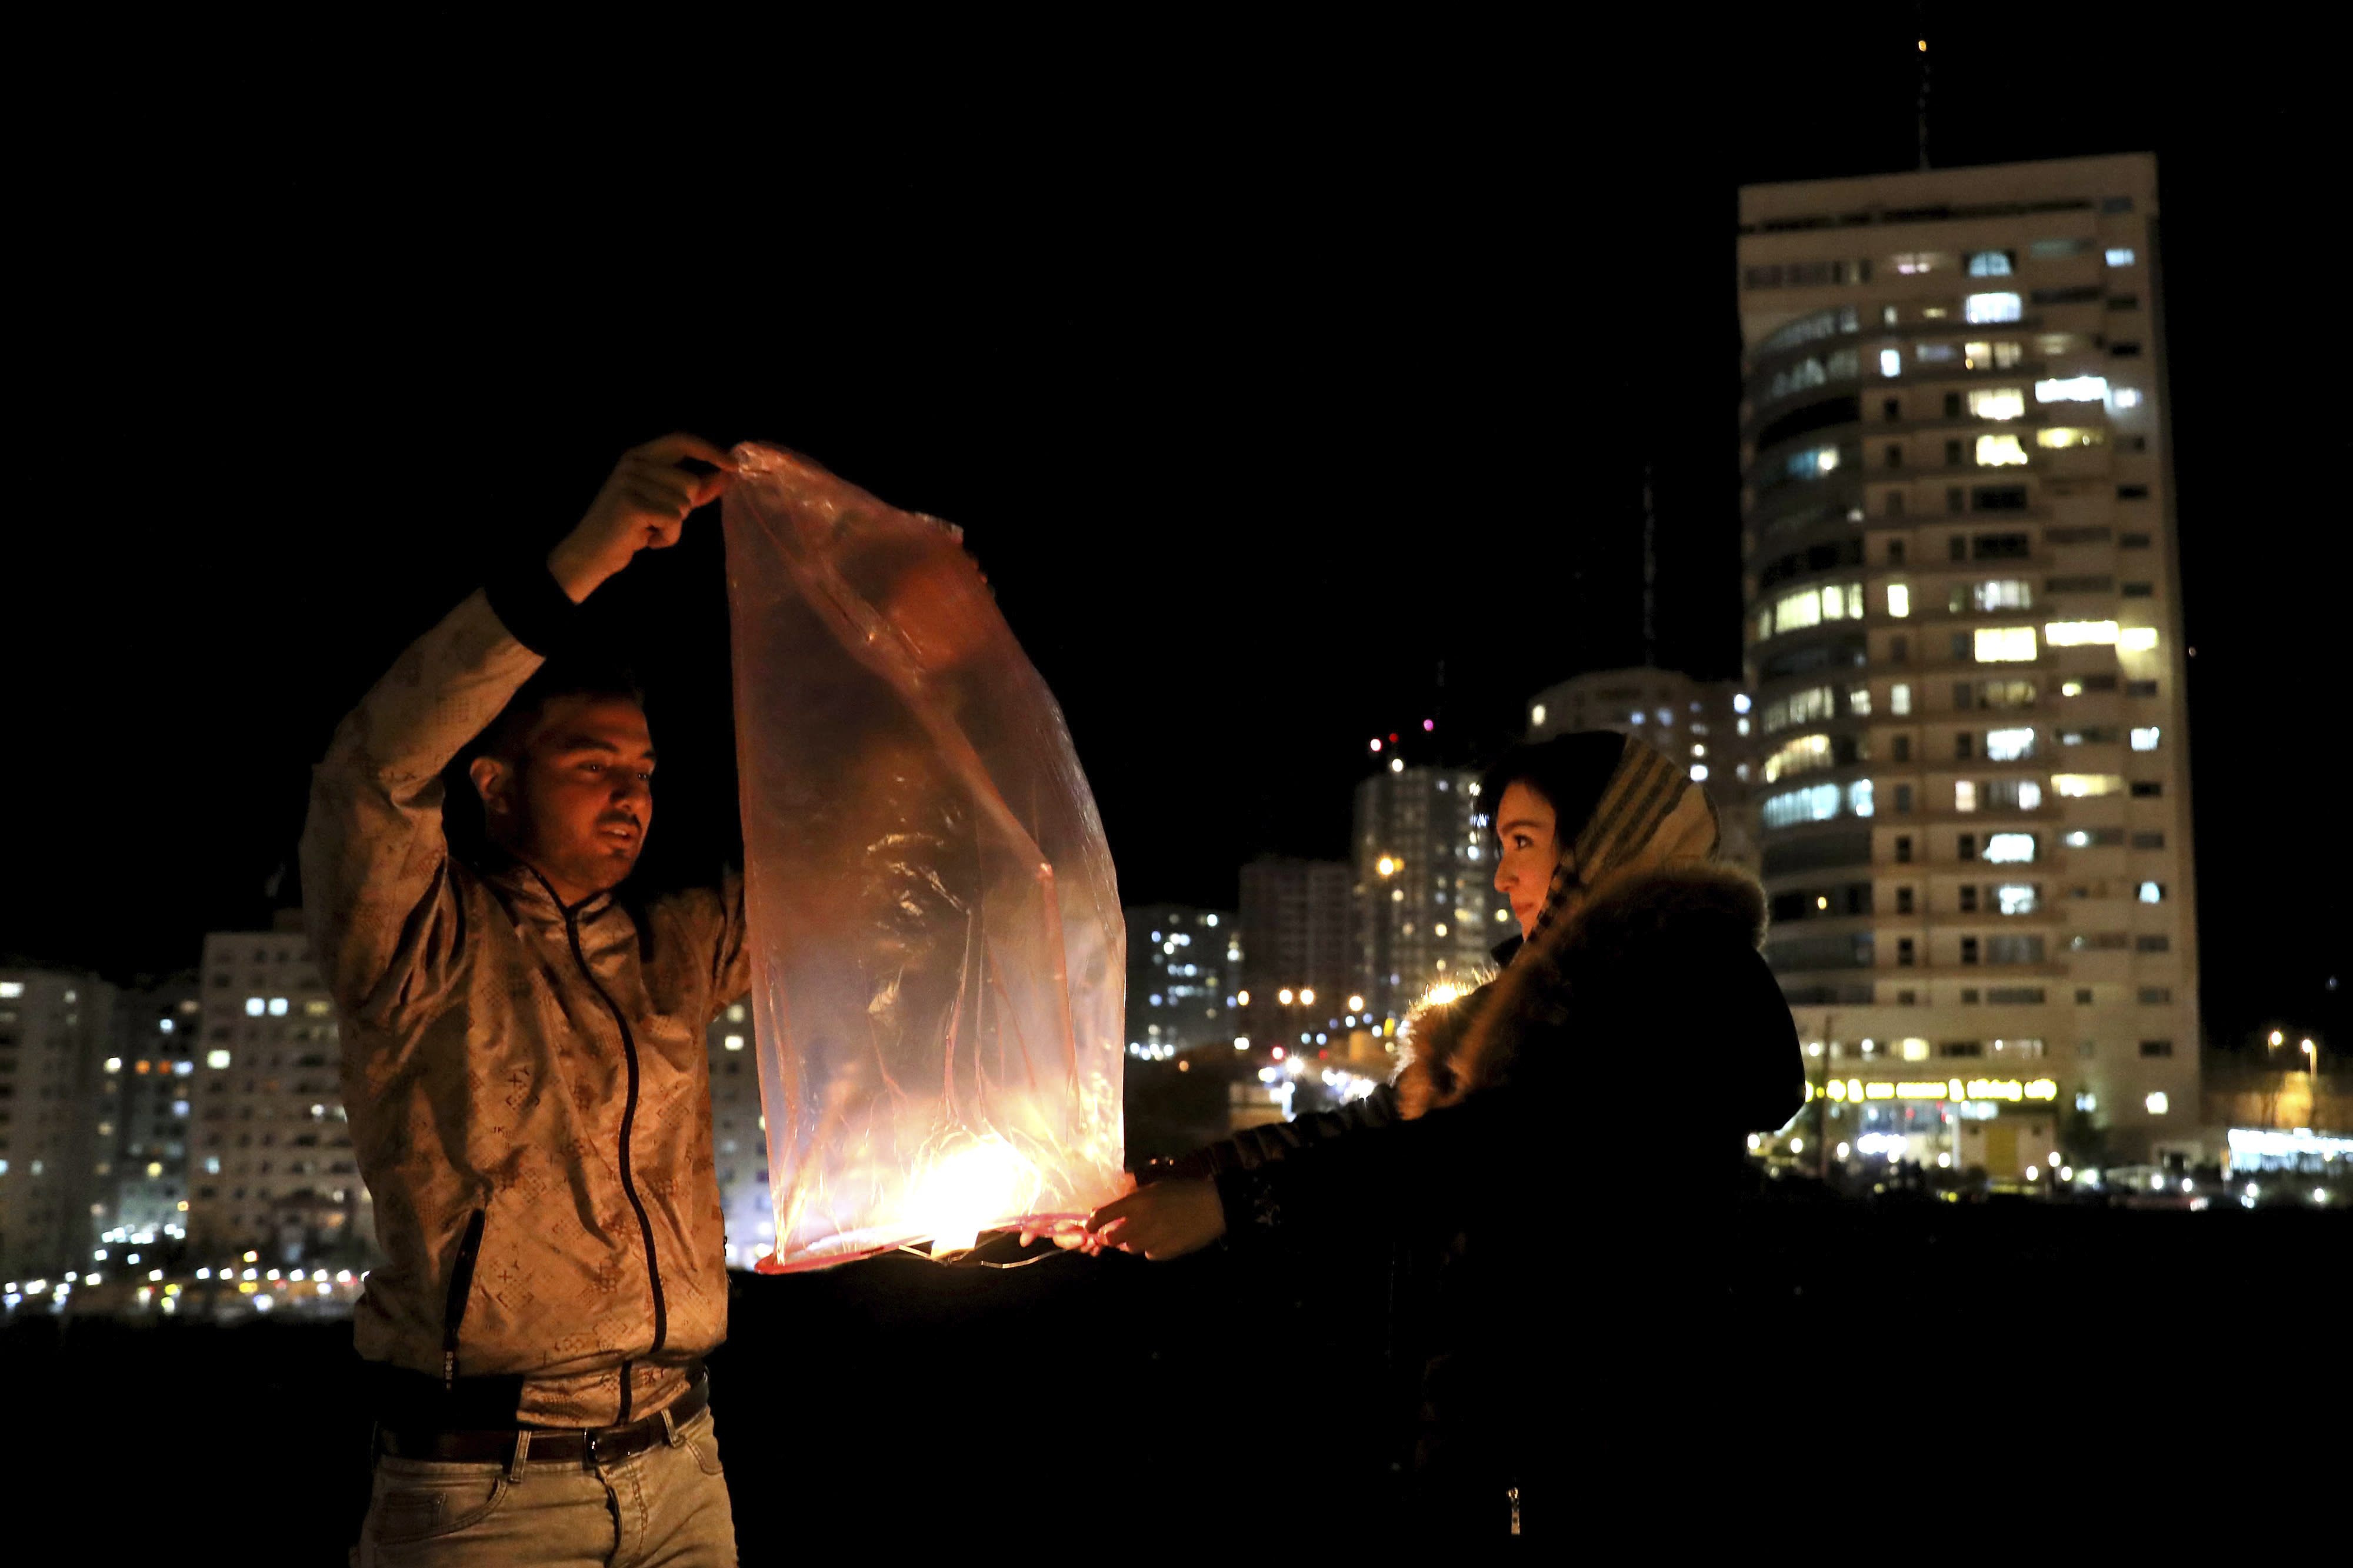 """In this Tuesday, March 17, 2020 photo, two Iranians release a lit lantern during a celebration, known as """"Chaharshanbe Souri,"""" or Wednesday Feast, marking the eve of the last Wednesday of the solar Persian year, in Tehran, Iran. (AP Photo/Ebrahim Noroozi)"""